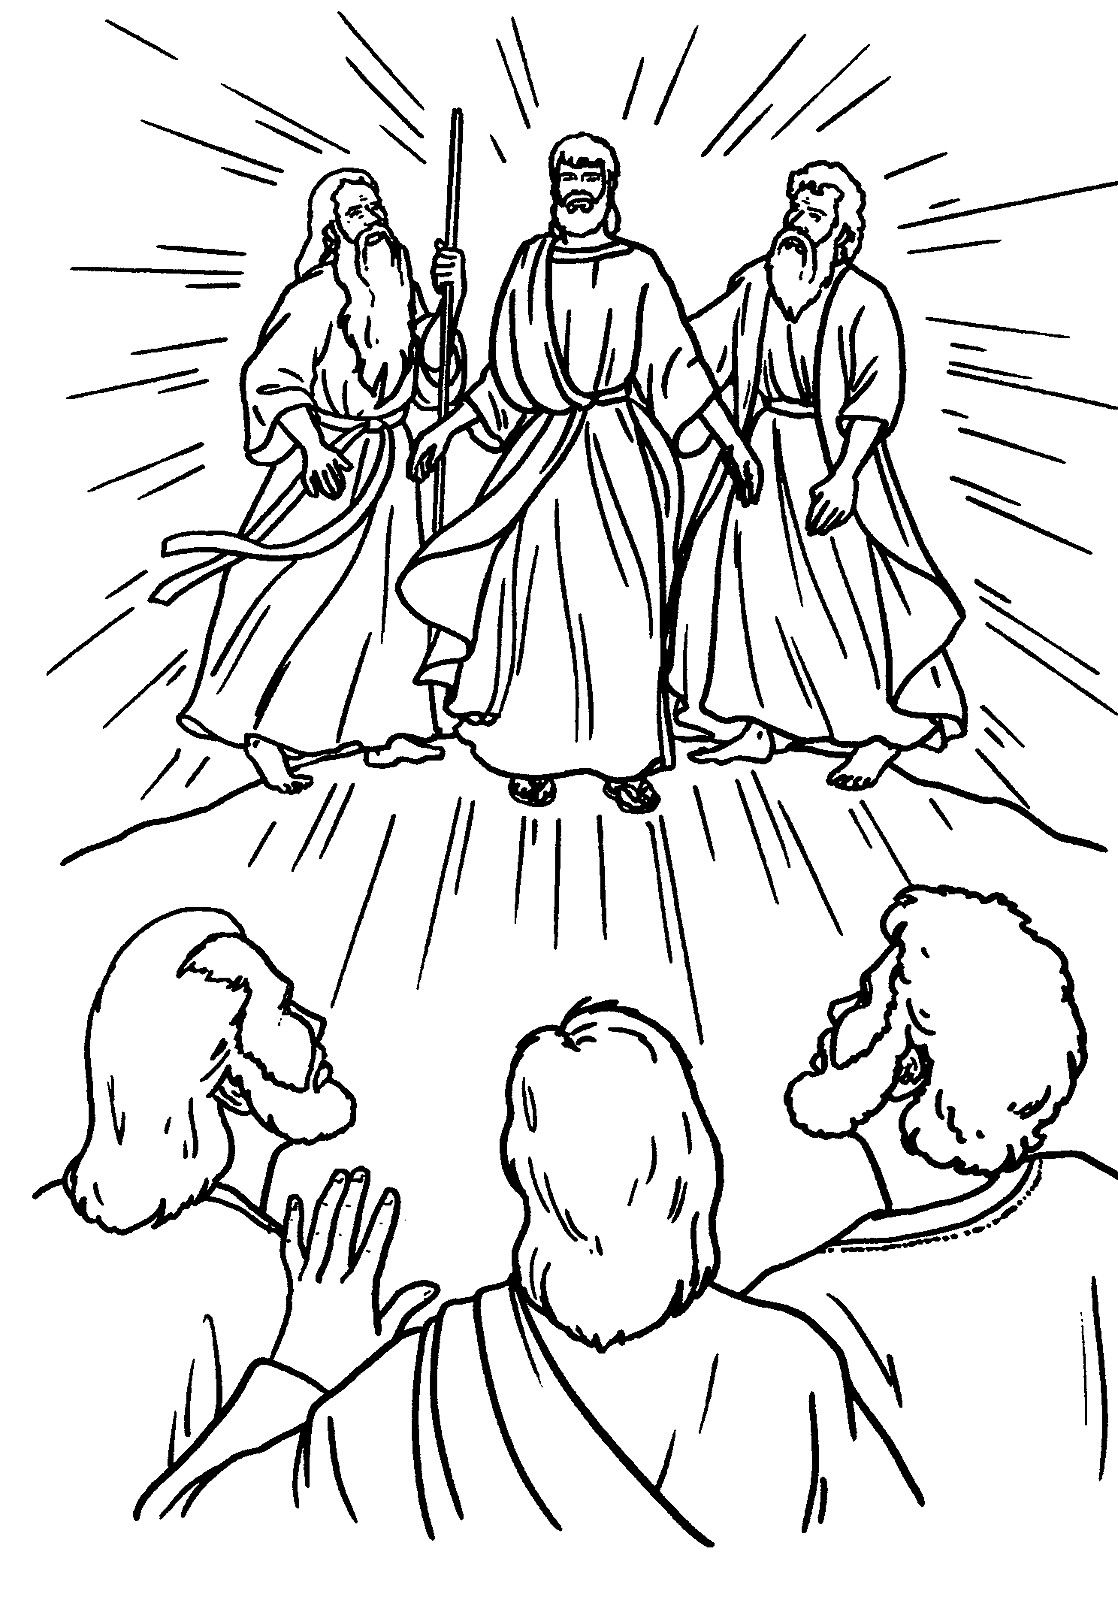 - The Transfiguration Catholic Coloring Page (con Imágenes